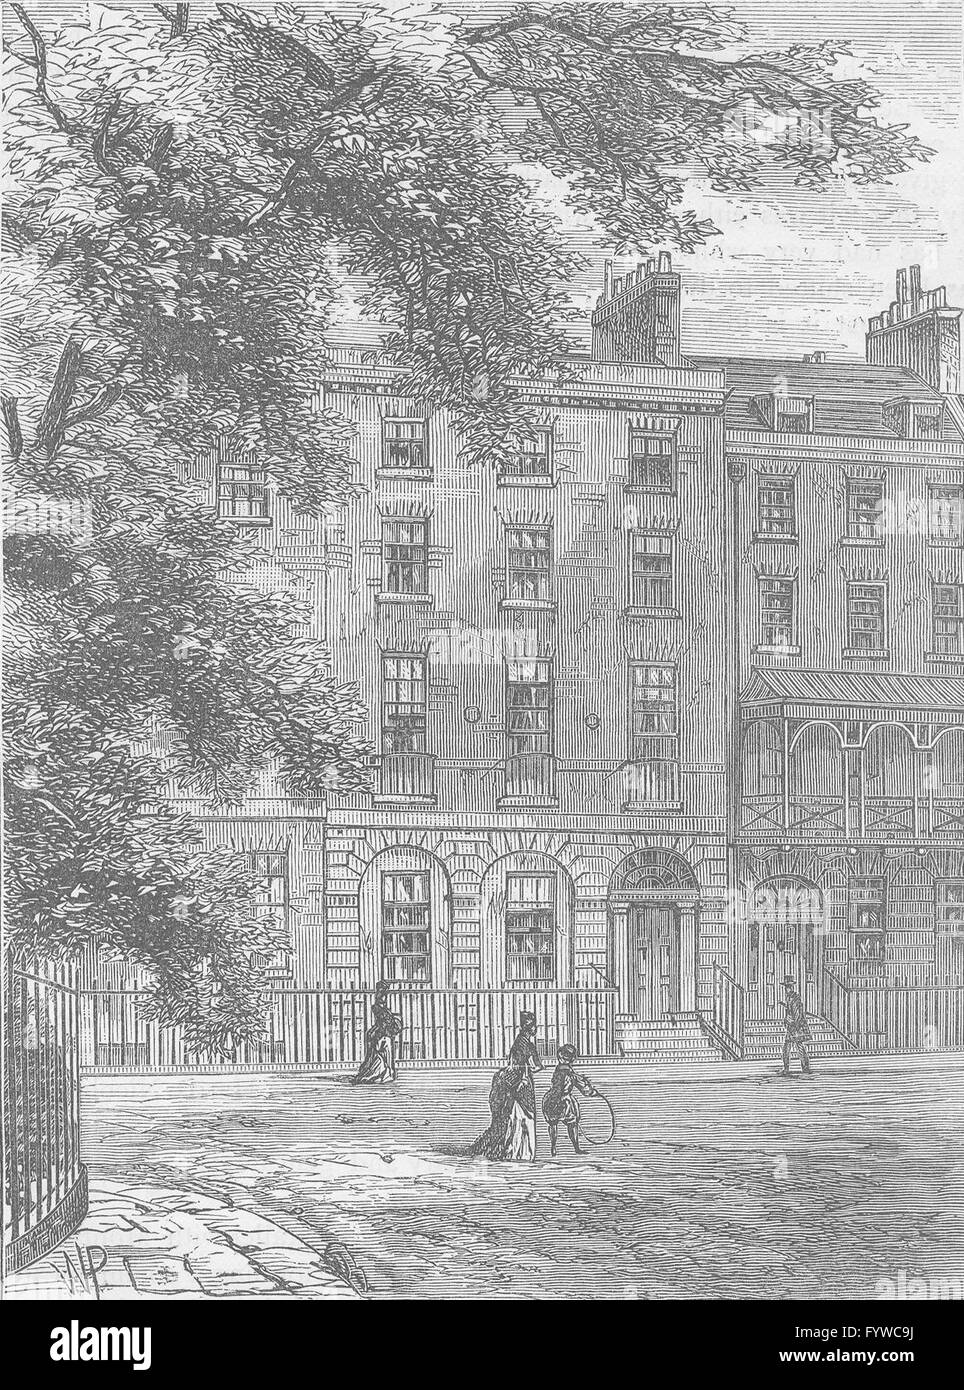 BLOOMSBURY: Sir Thomas Lawrence's House, Russell Square. London, print c1880 - Stock Image